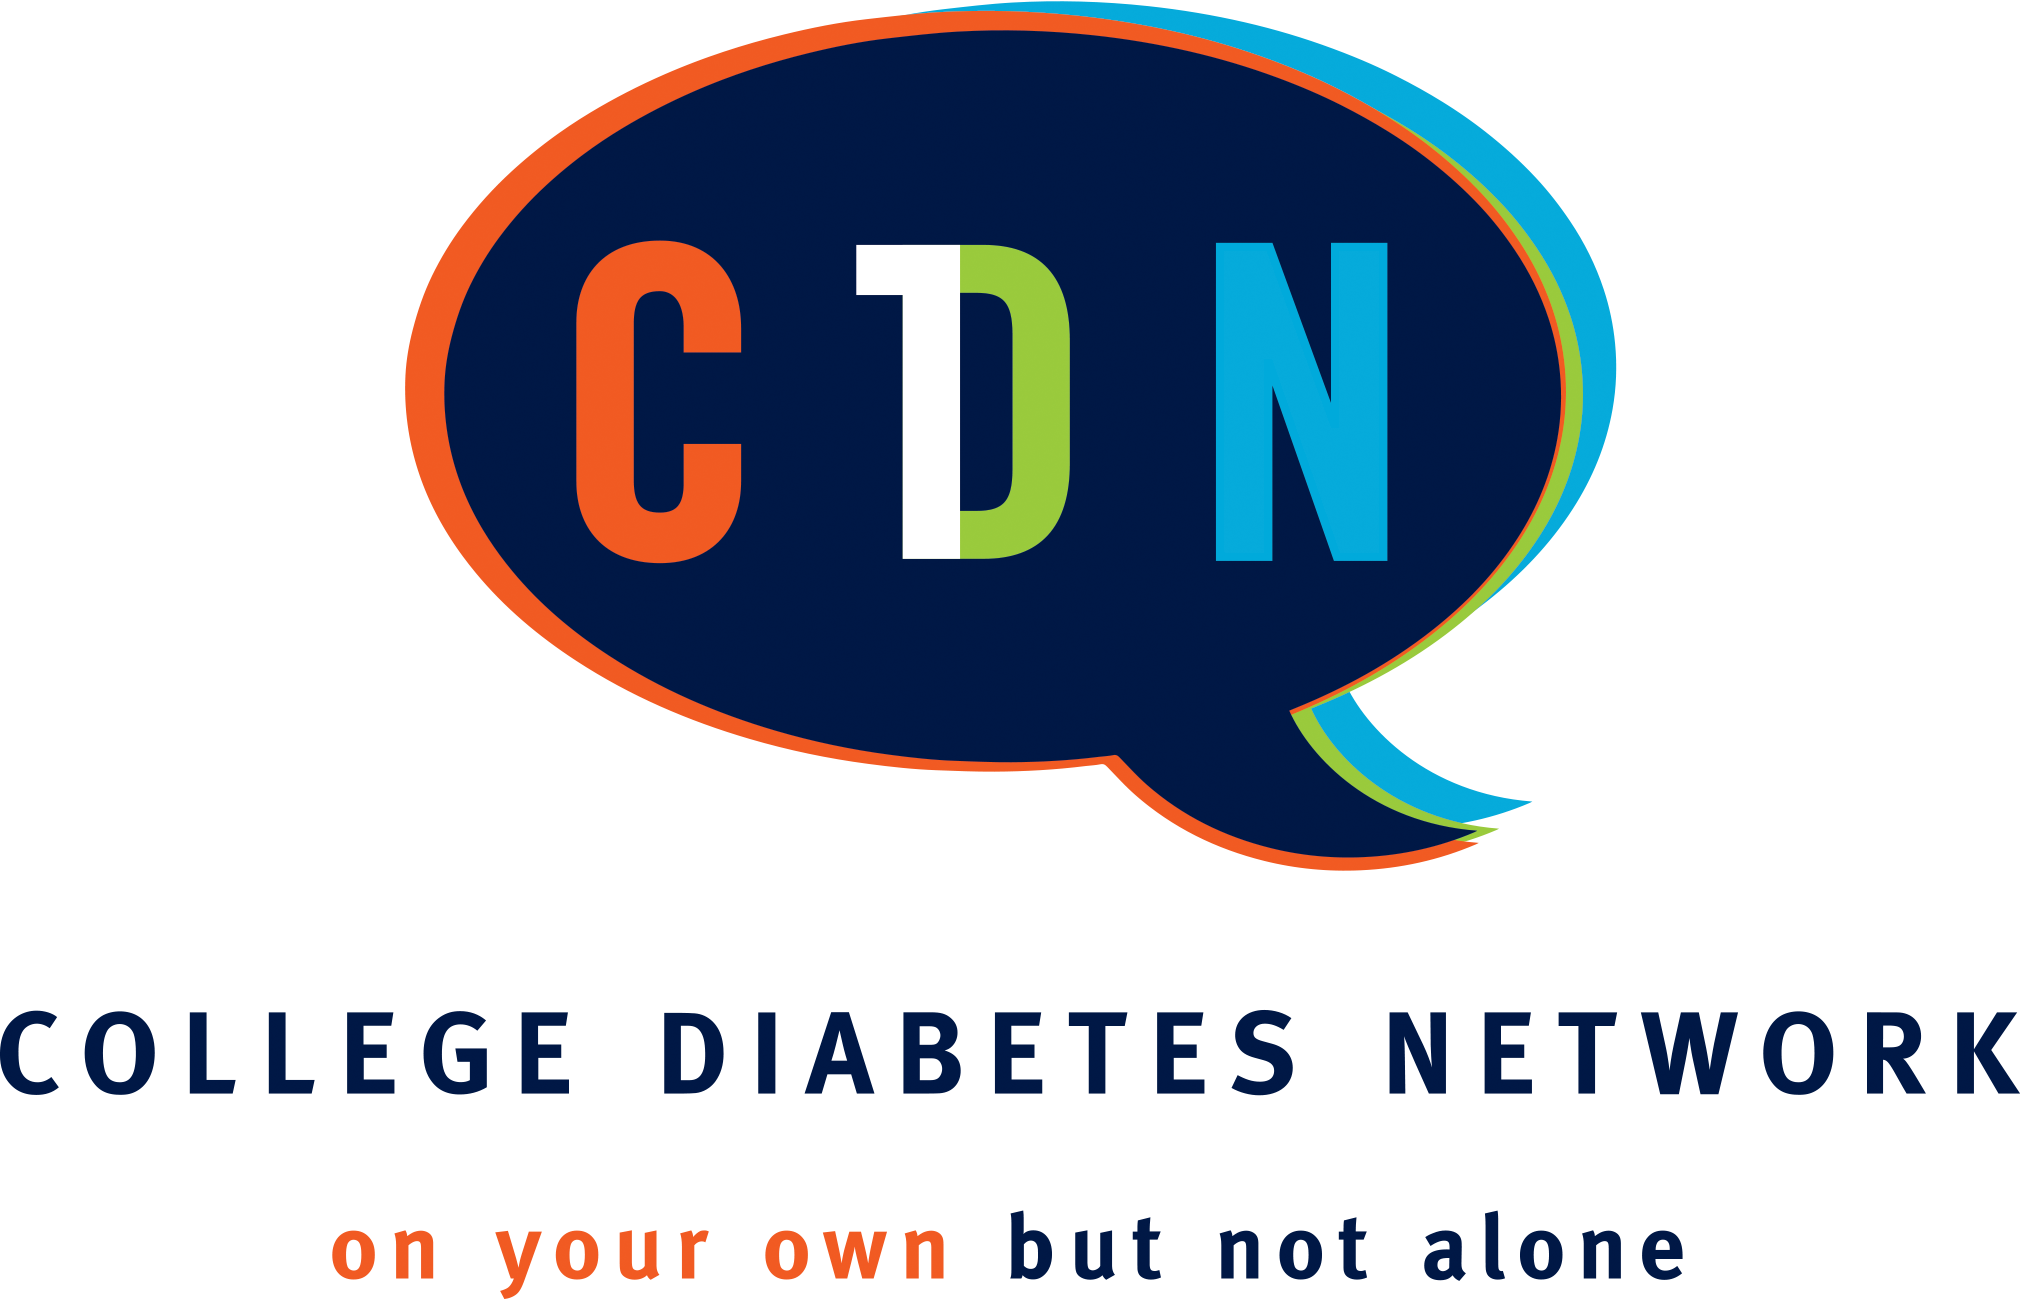 The College Diabetes Network (CDN) is a 501c3 non-profit organization whose mission is singularly focused on providing young adults with T1D the peer connections they value, and expert resources they need, to successfully manage the challenging transition to independence at college and beyond. -